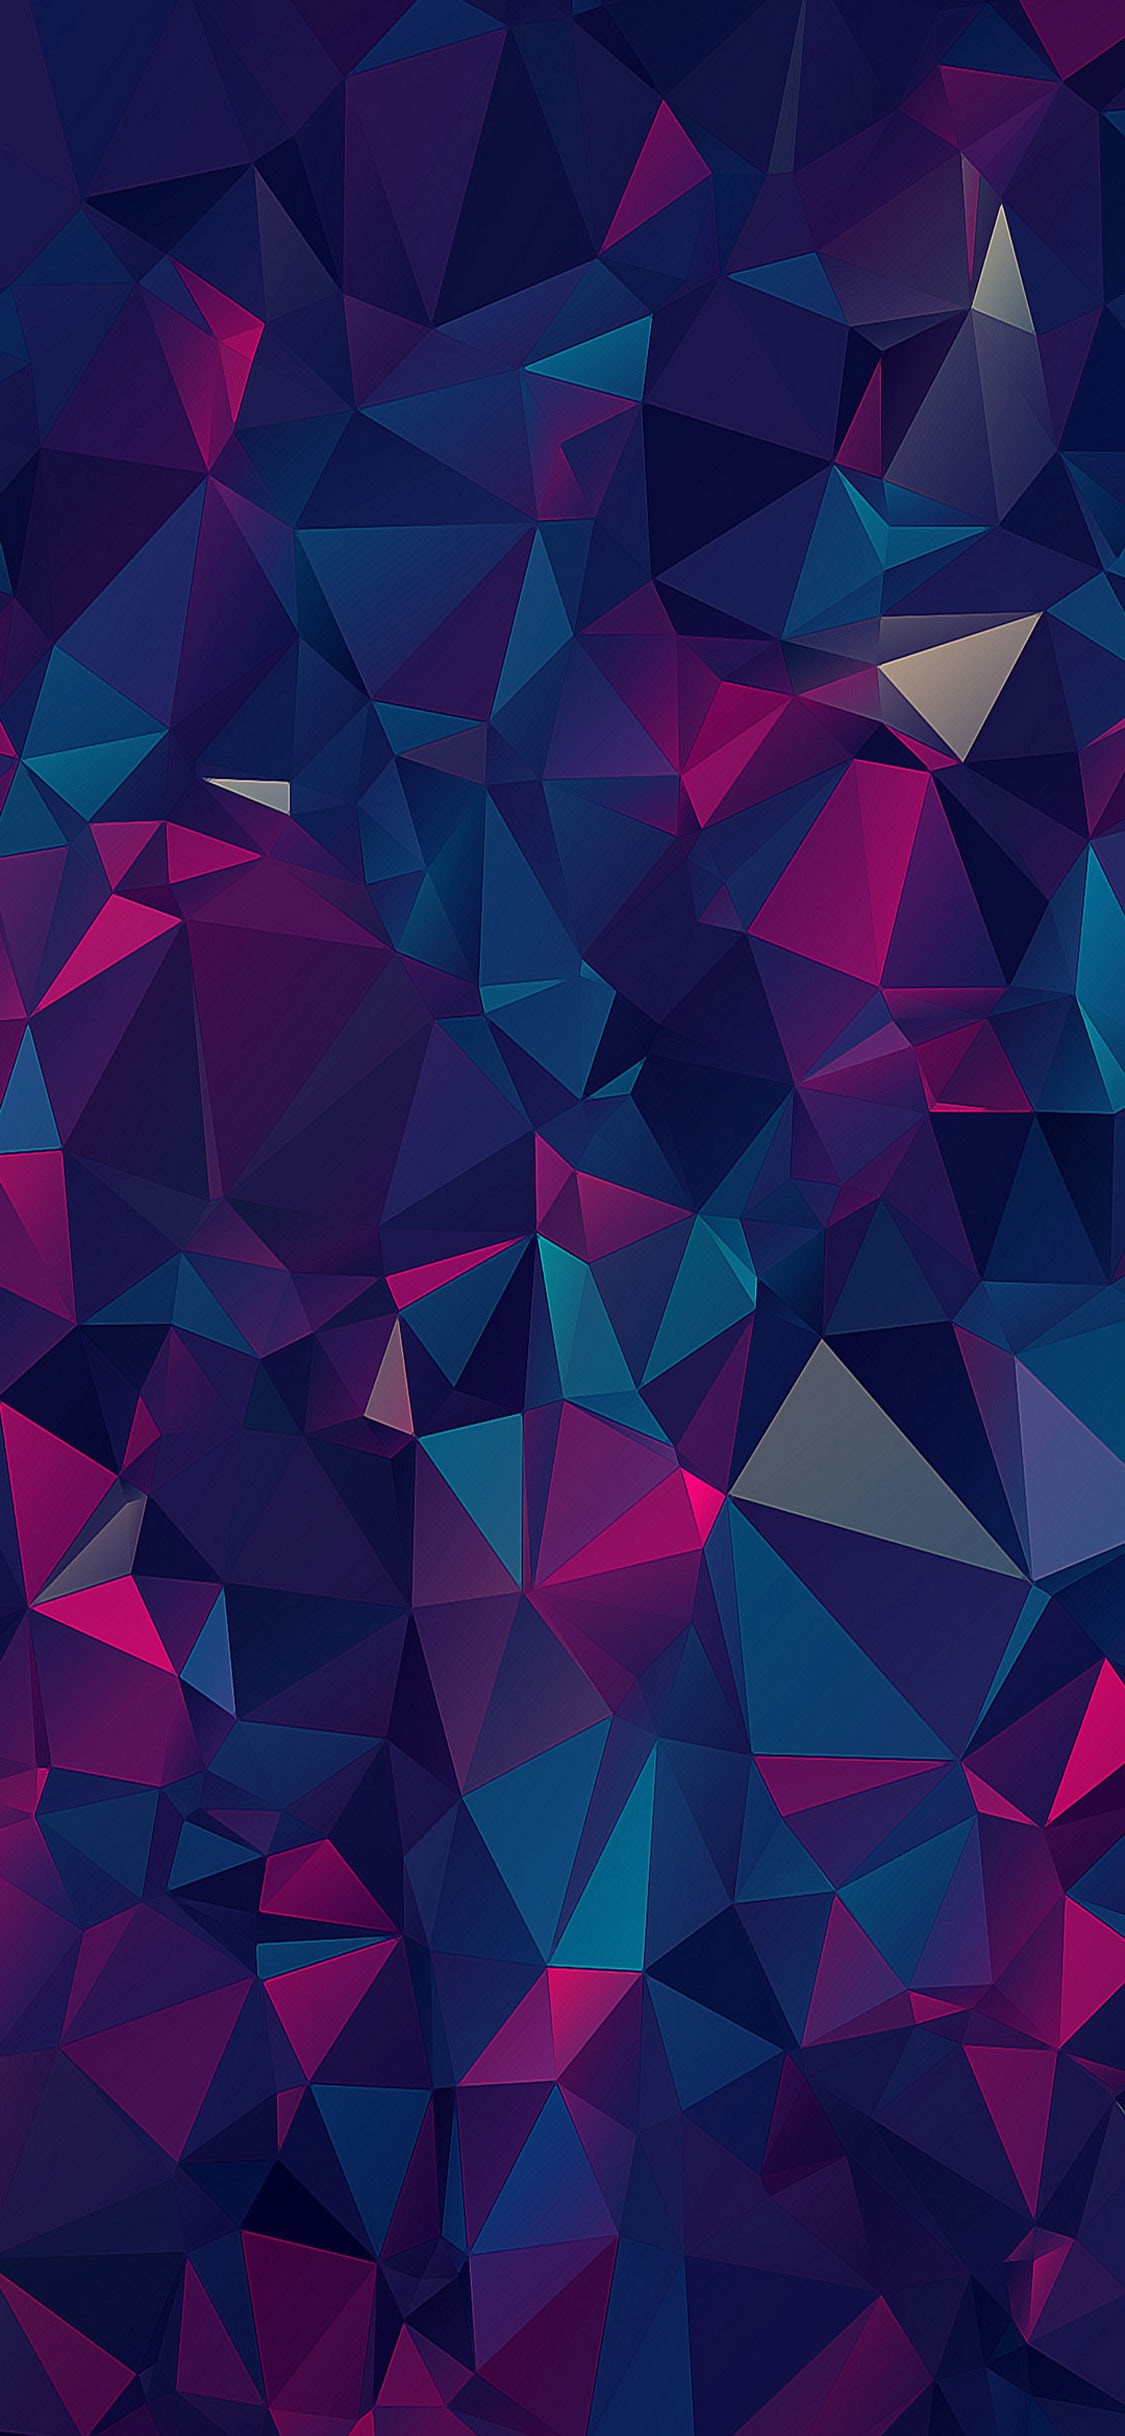 Cool iPhone Wallpapers (82+ images)